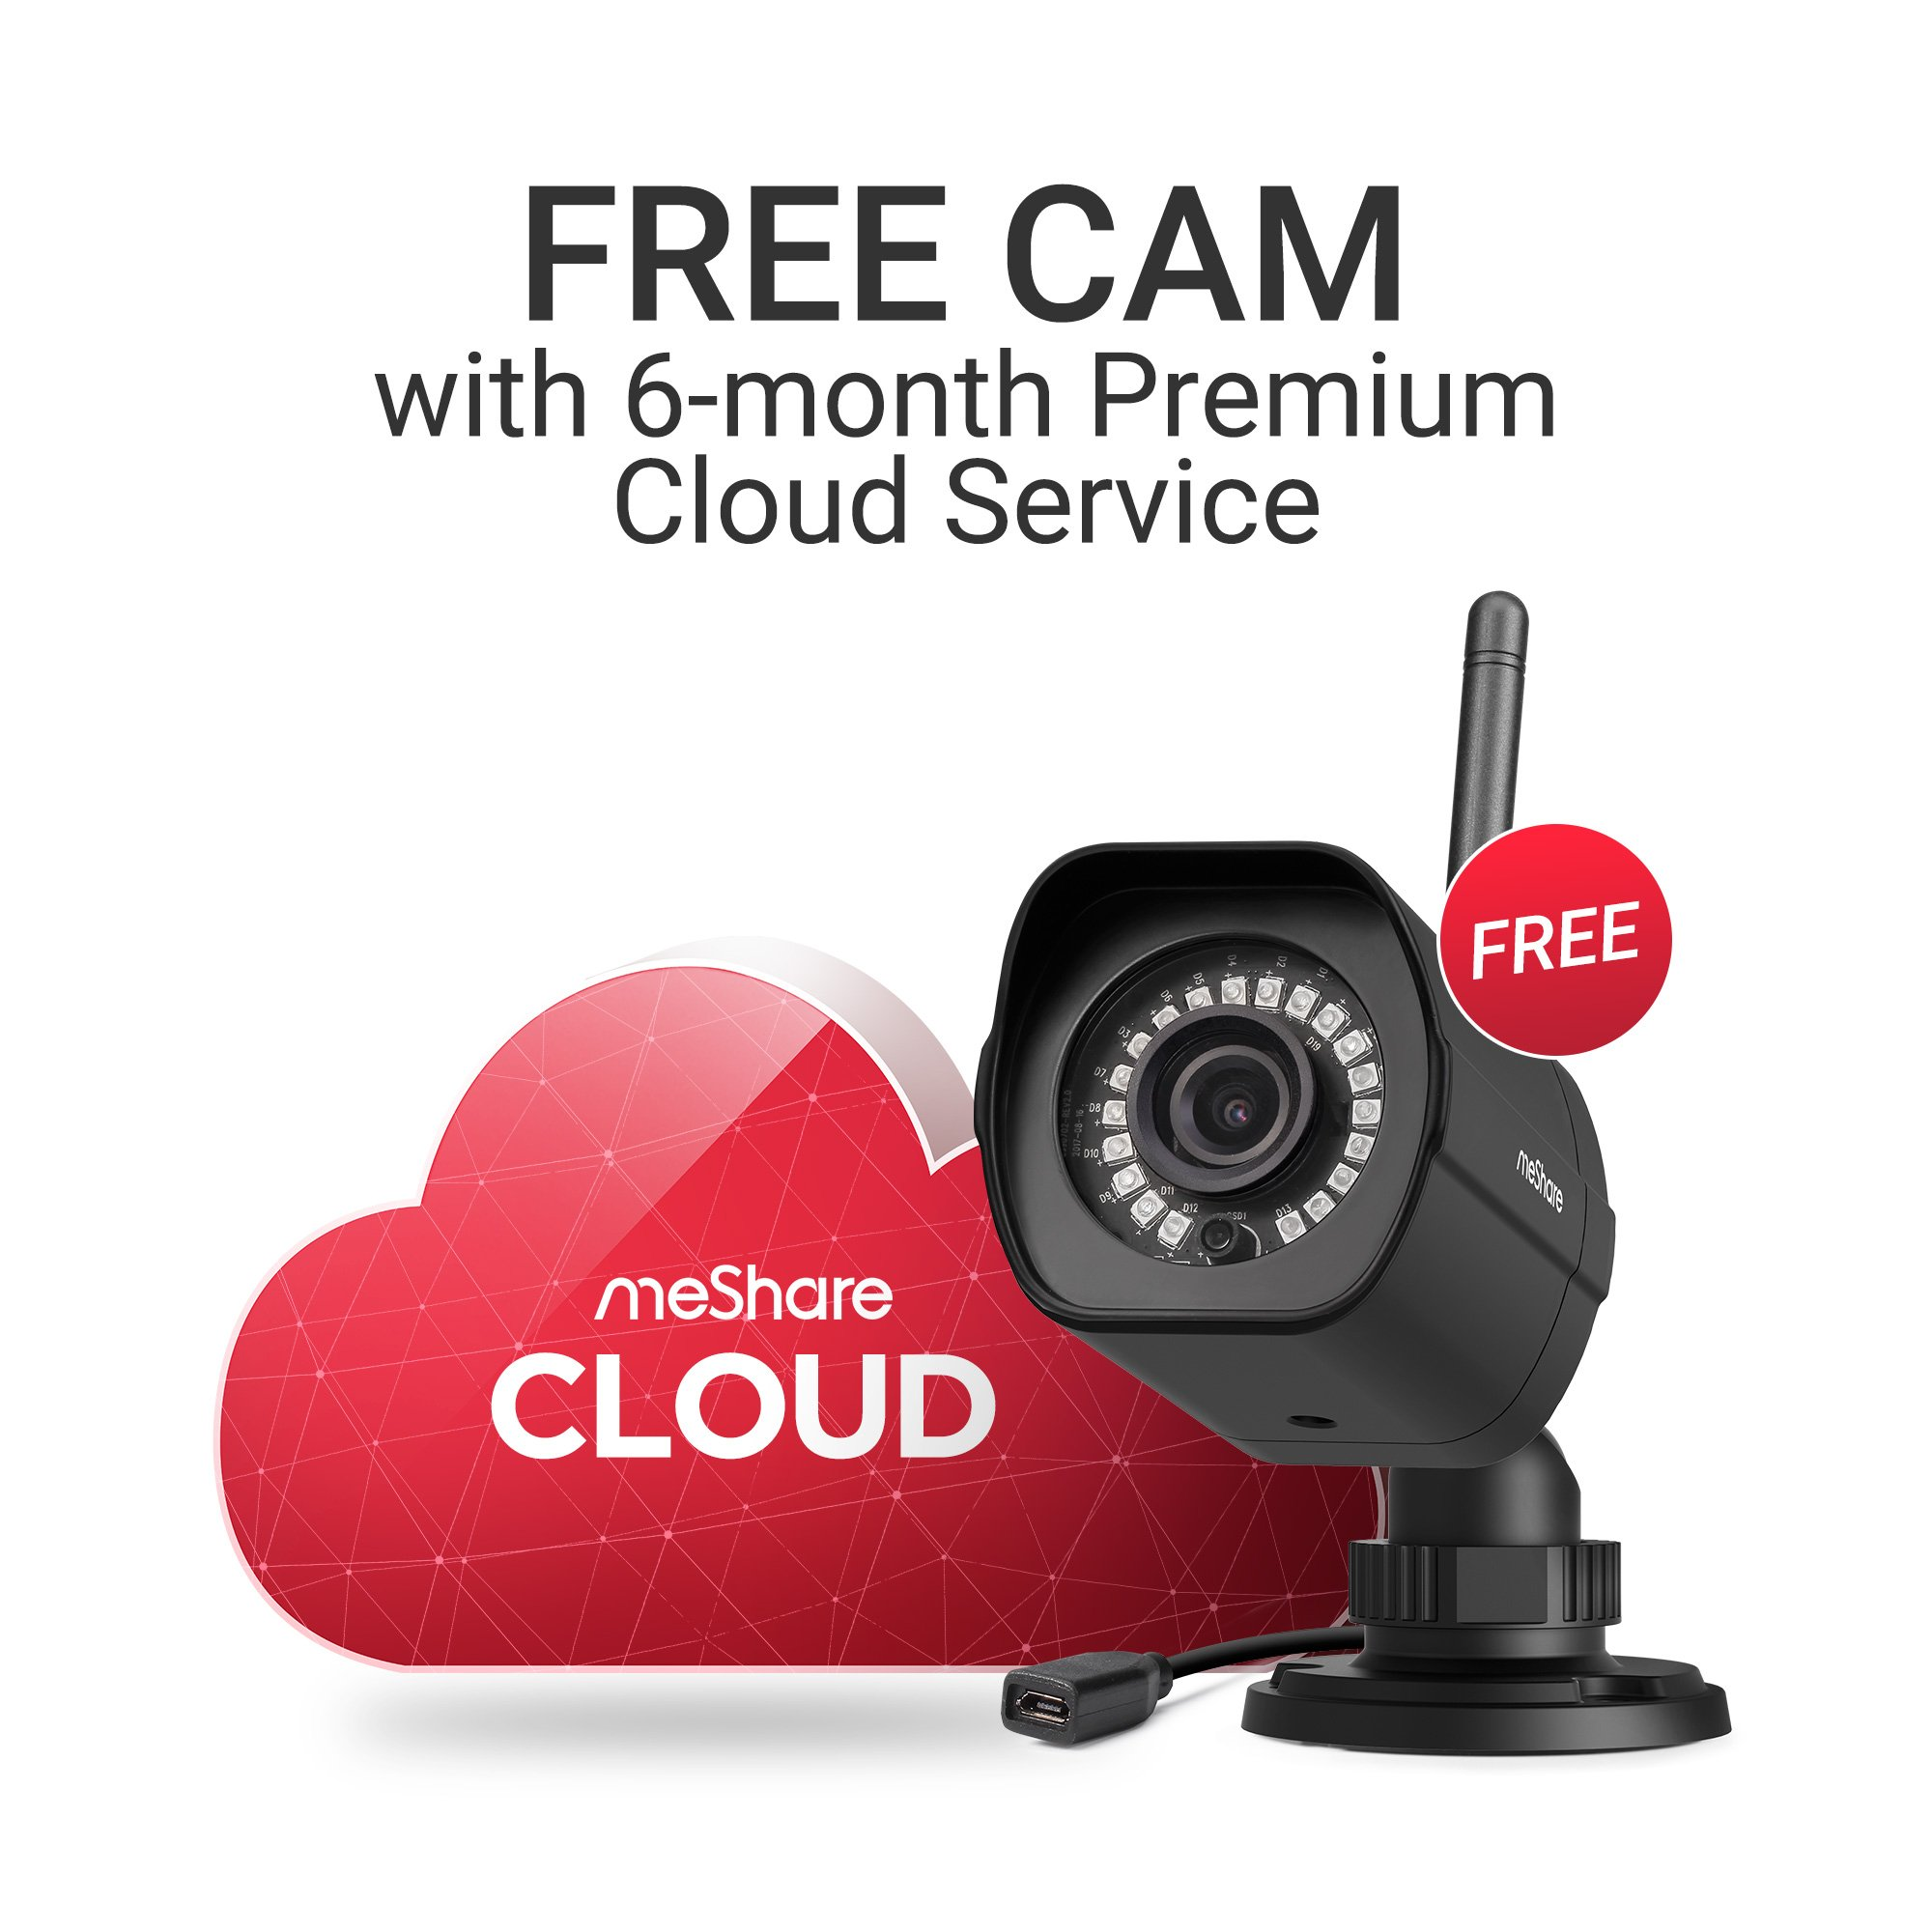 meShare 6 Month Premium Cloud Recording - Get Free Bounded 1080p HD Outdoor Wireless Security Camera